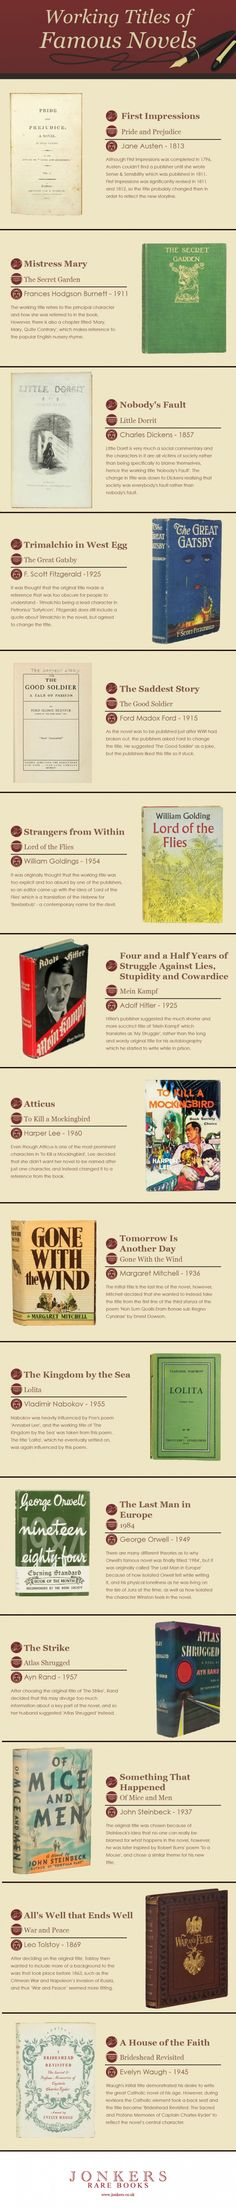 The working titles of famous novels from Pride and Prejudice to 1984 | News | Culture | The Independent